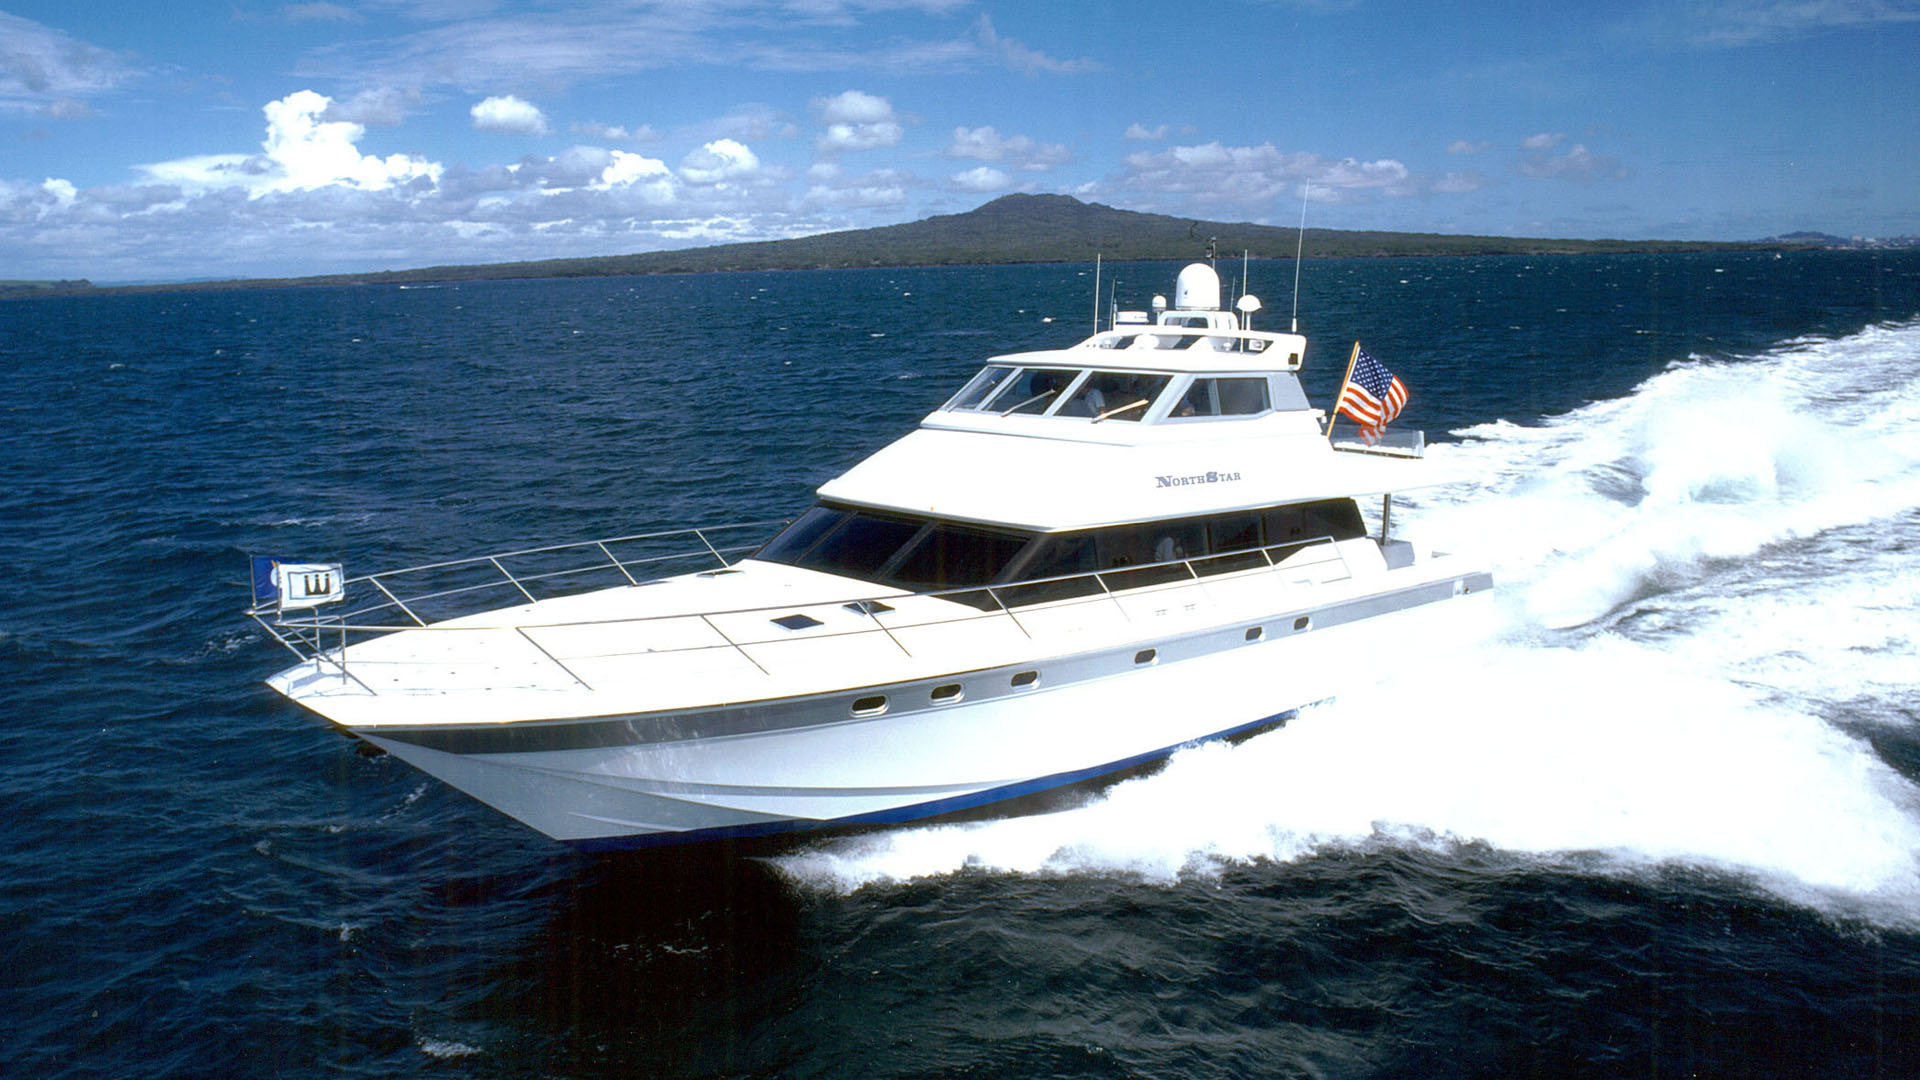 North Star Yachts Full Screen Picture